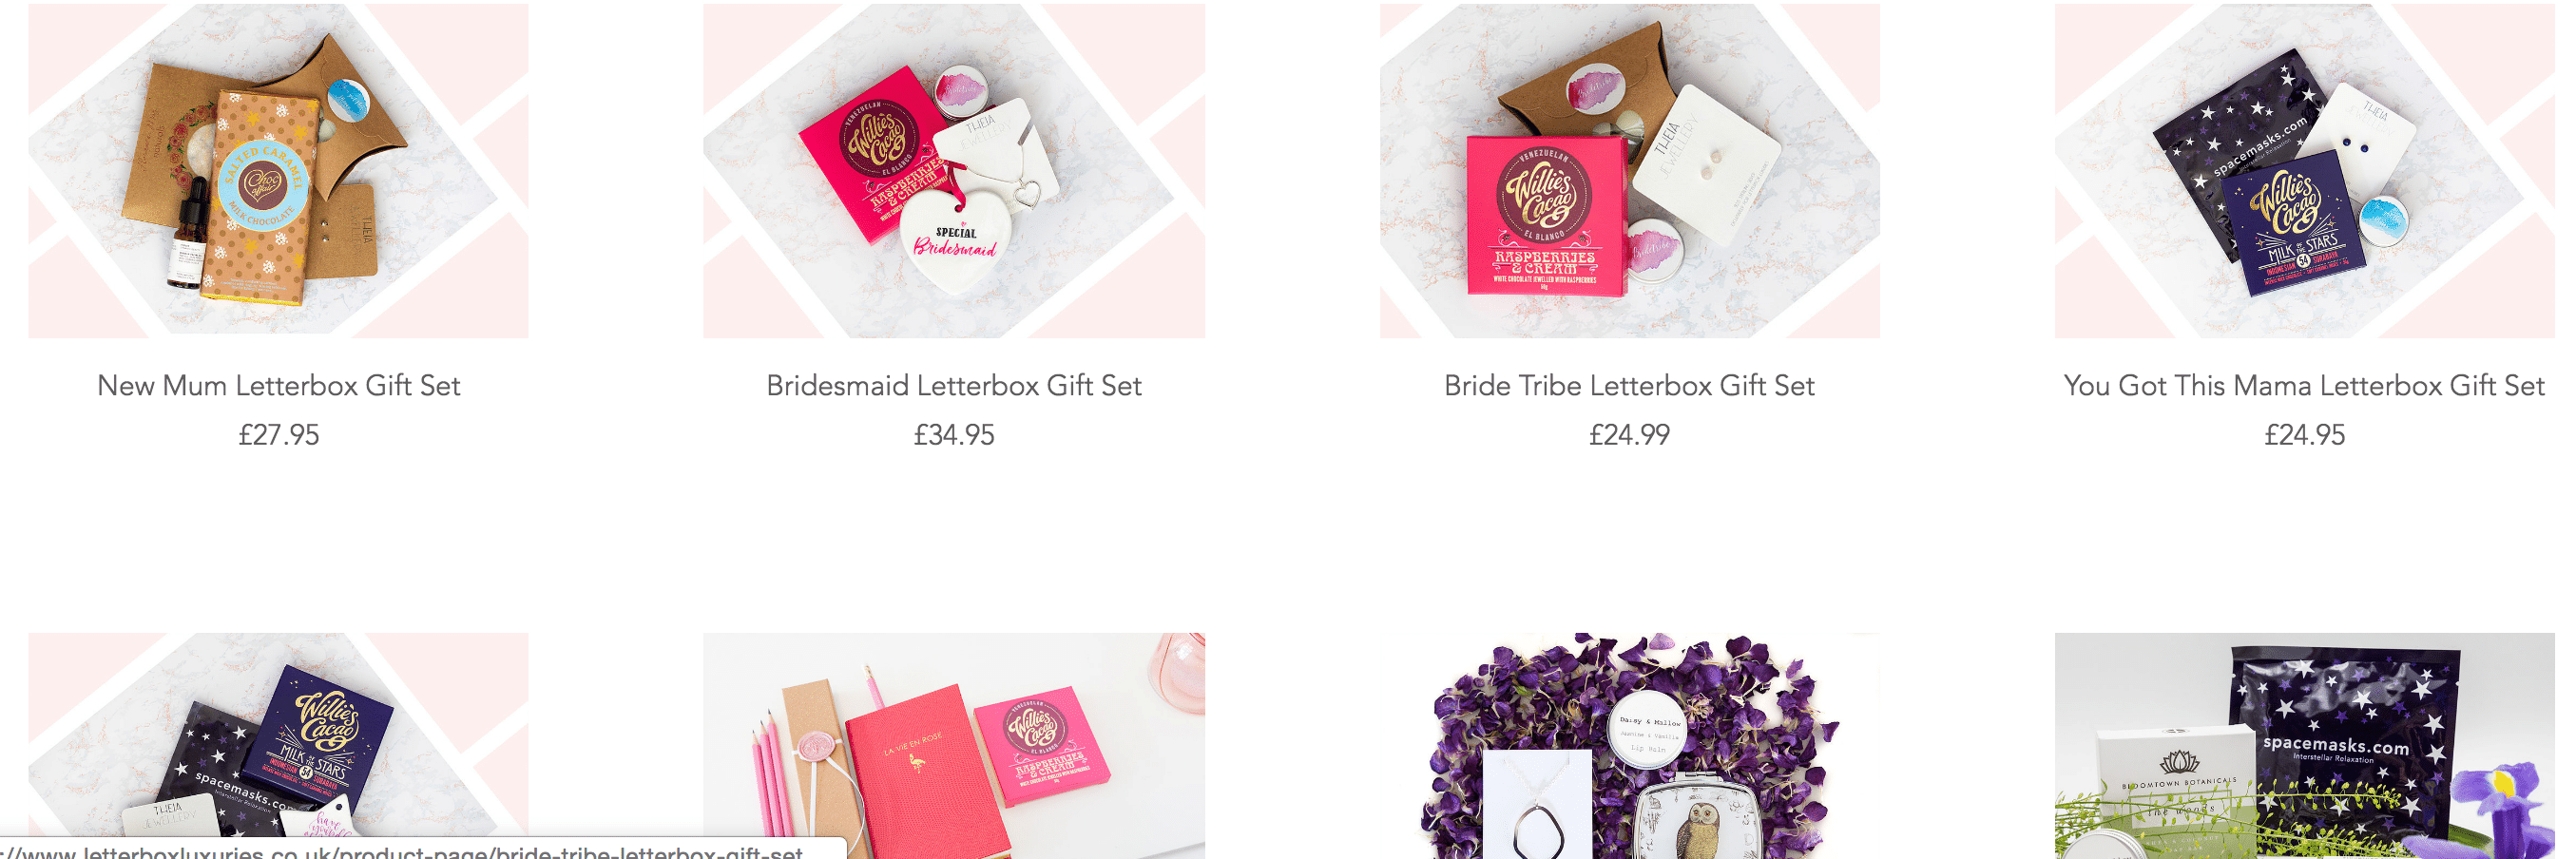 Letterbox luxuries gift ideas for bridesmaids